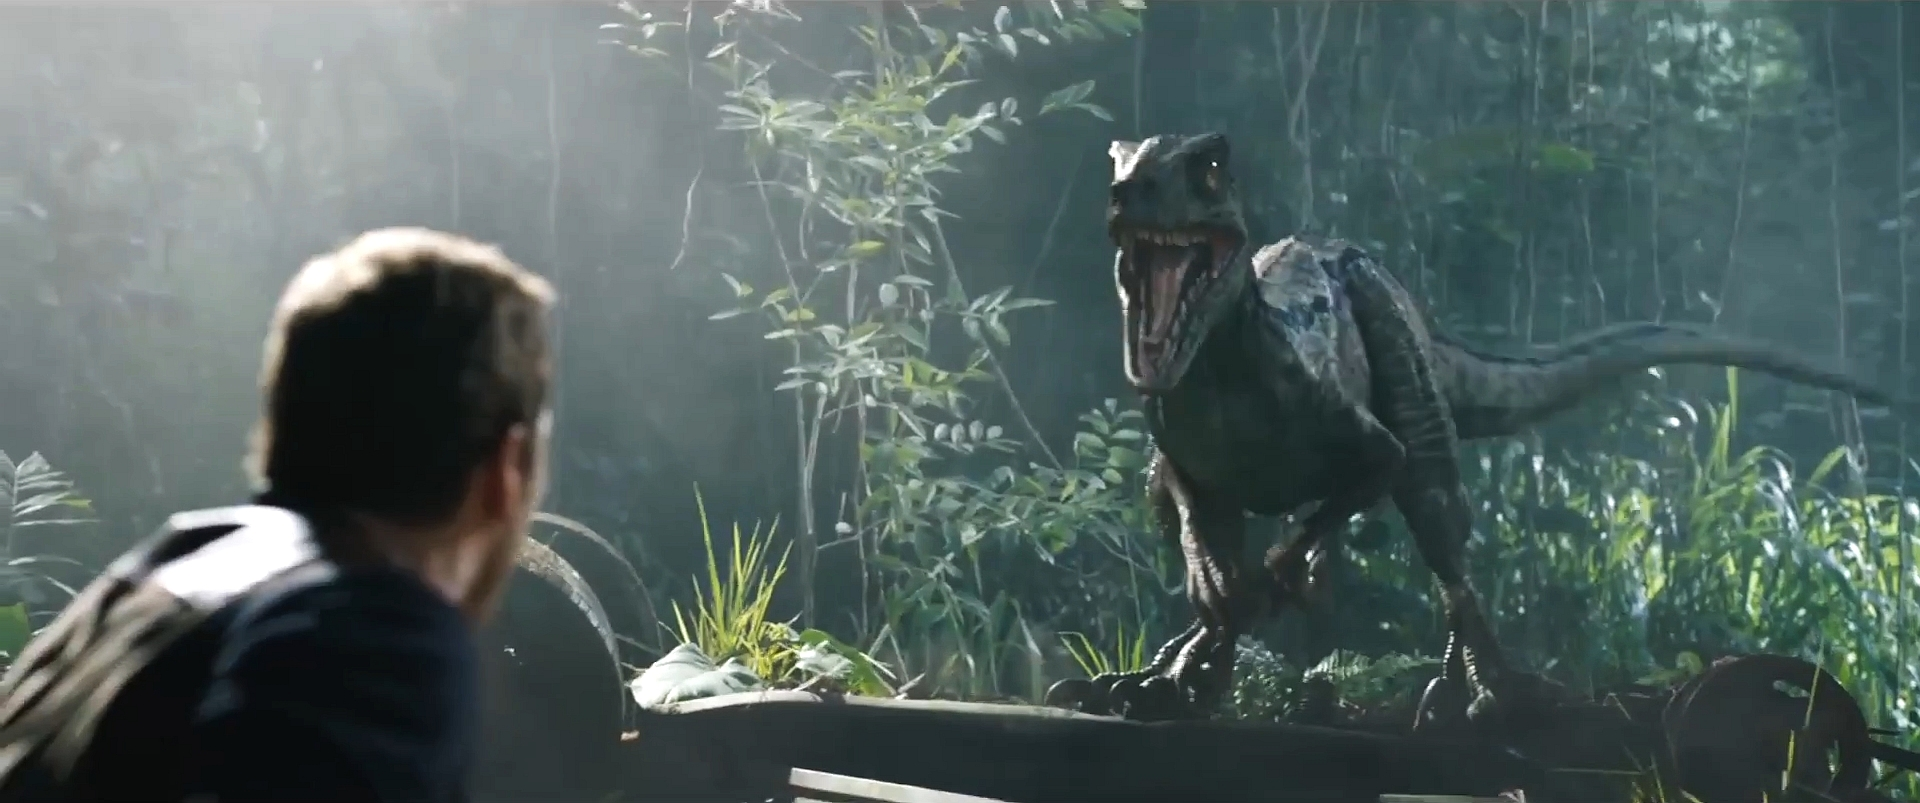 Free Nice Quotes Wallpapers Jurassic World Fallen Kingdom Wallpapers